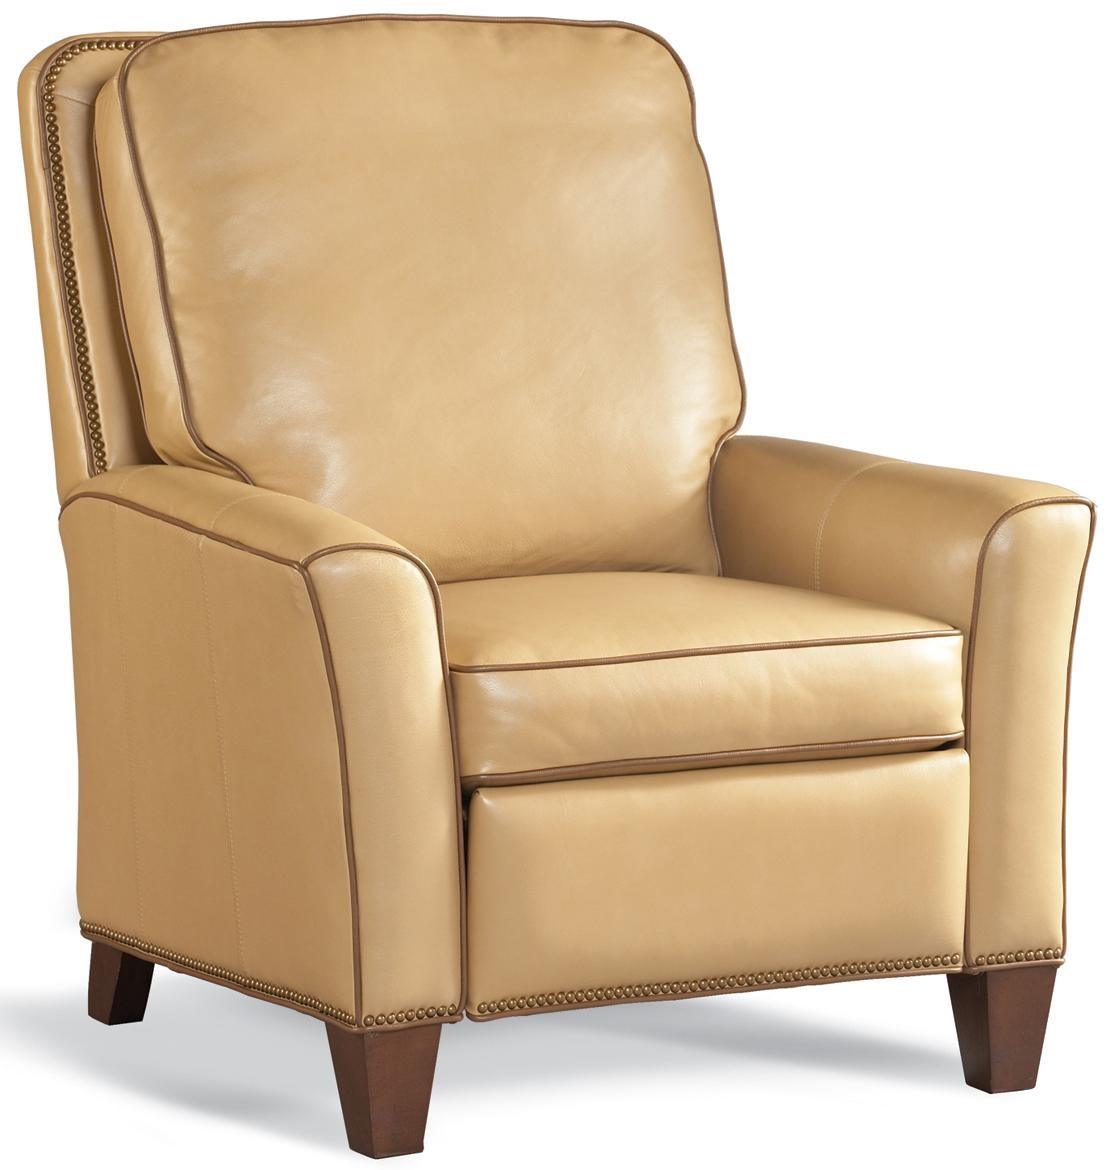 MotionCraft by Sherrill Recliners Contemporary Push Back Recliner - Jacksonville Furniture Mart - High Leg Recliners  sc 1 st  Jacksonville Furniture Mart & MotionCraft by Sherrill Recliners Contemporary Push Back Recliner ... islam-shia.org